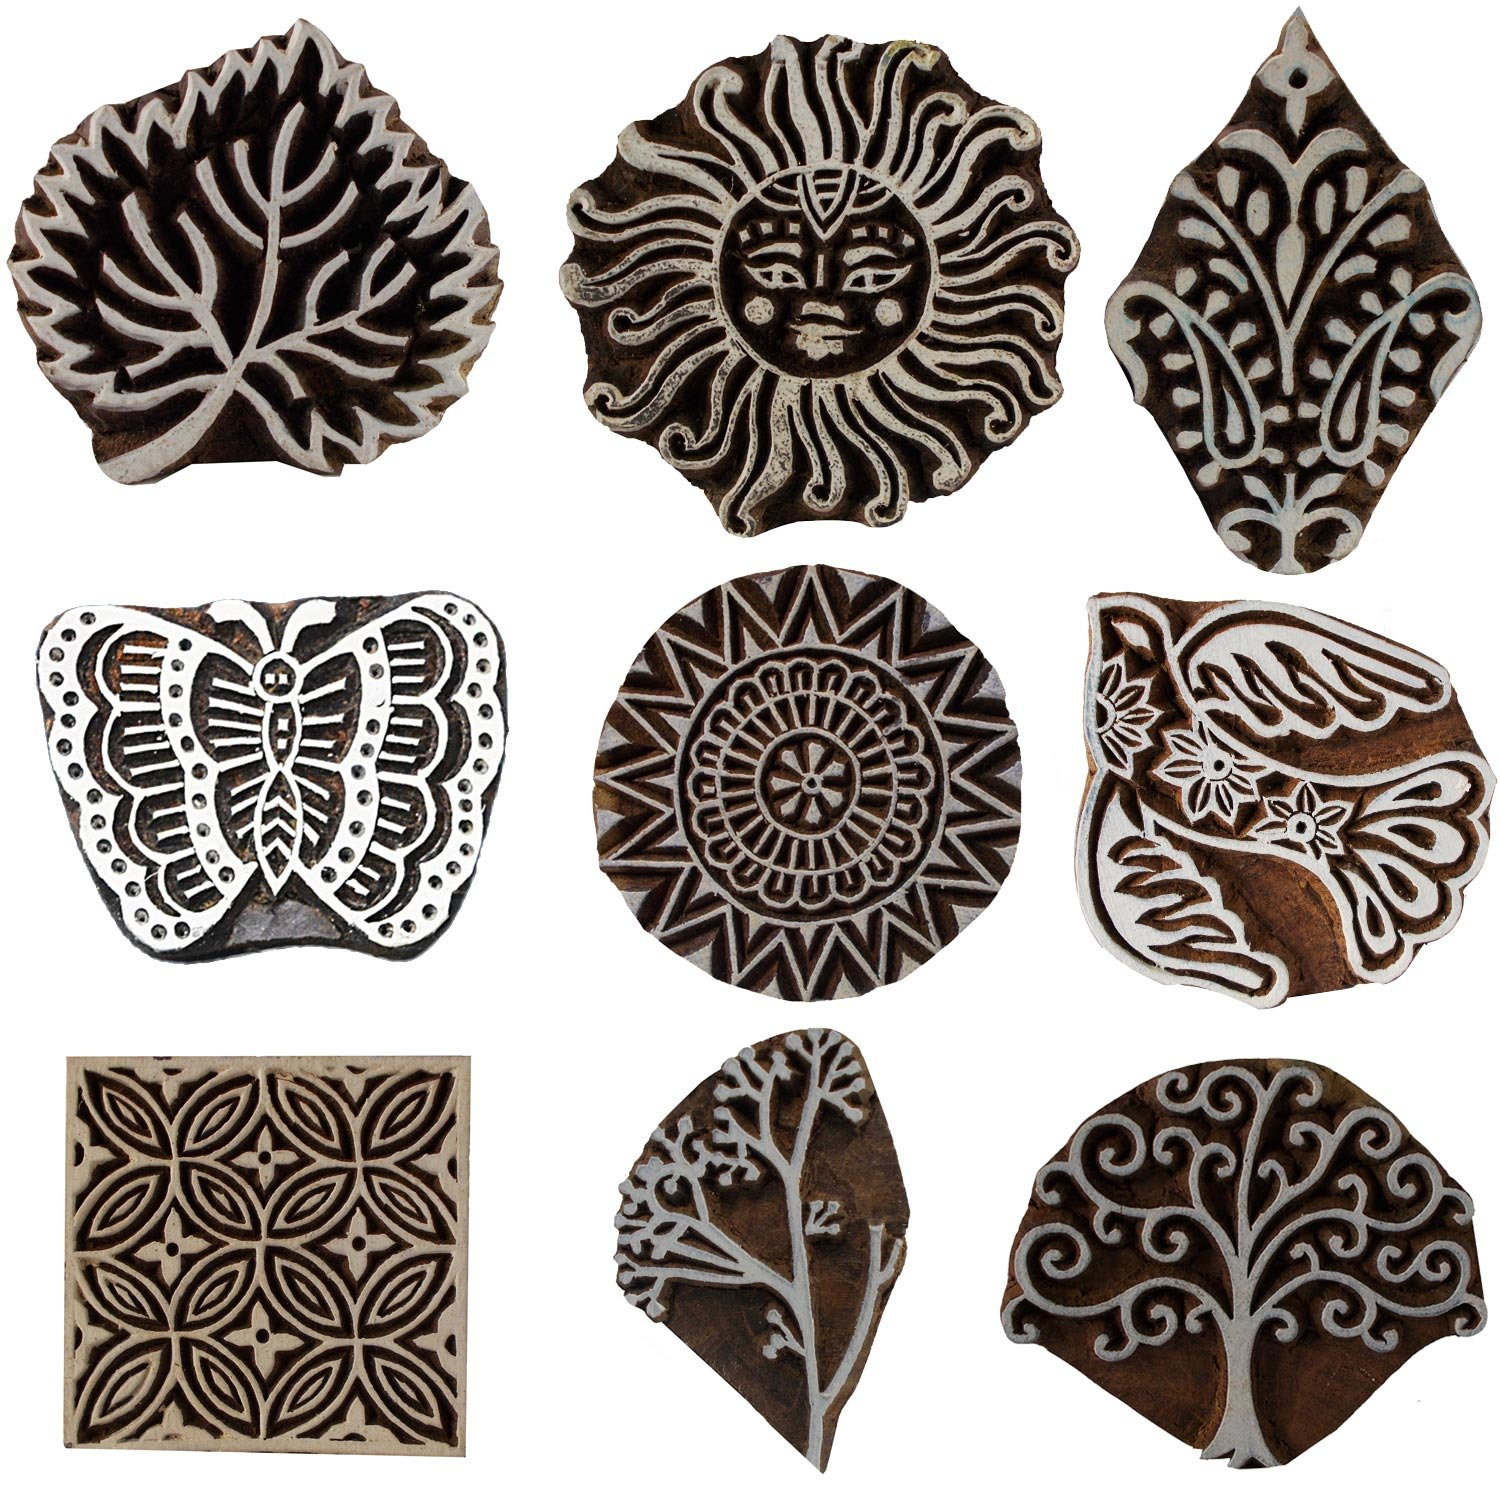 Bunch of 9 Motif Printing Blocks Indian Handmade Square Floral Butterfly Sun Tree Leaf Textile Print Wooden Stamps Clay Pottery Henna Scrapbook Block